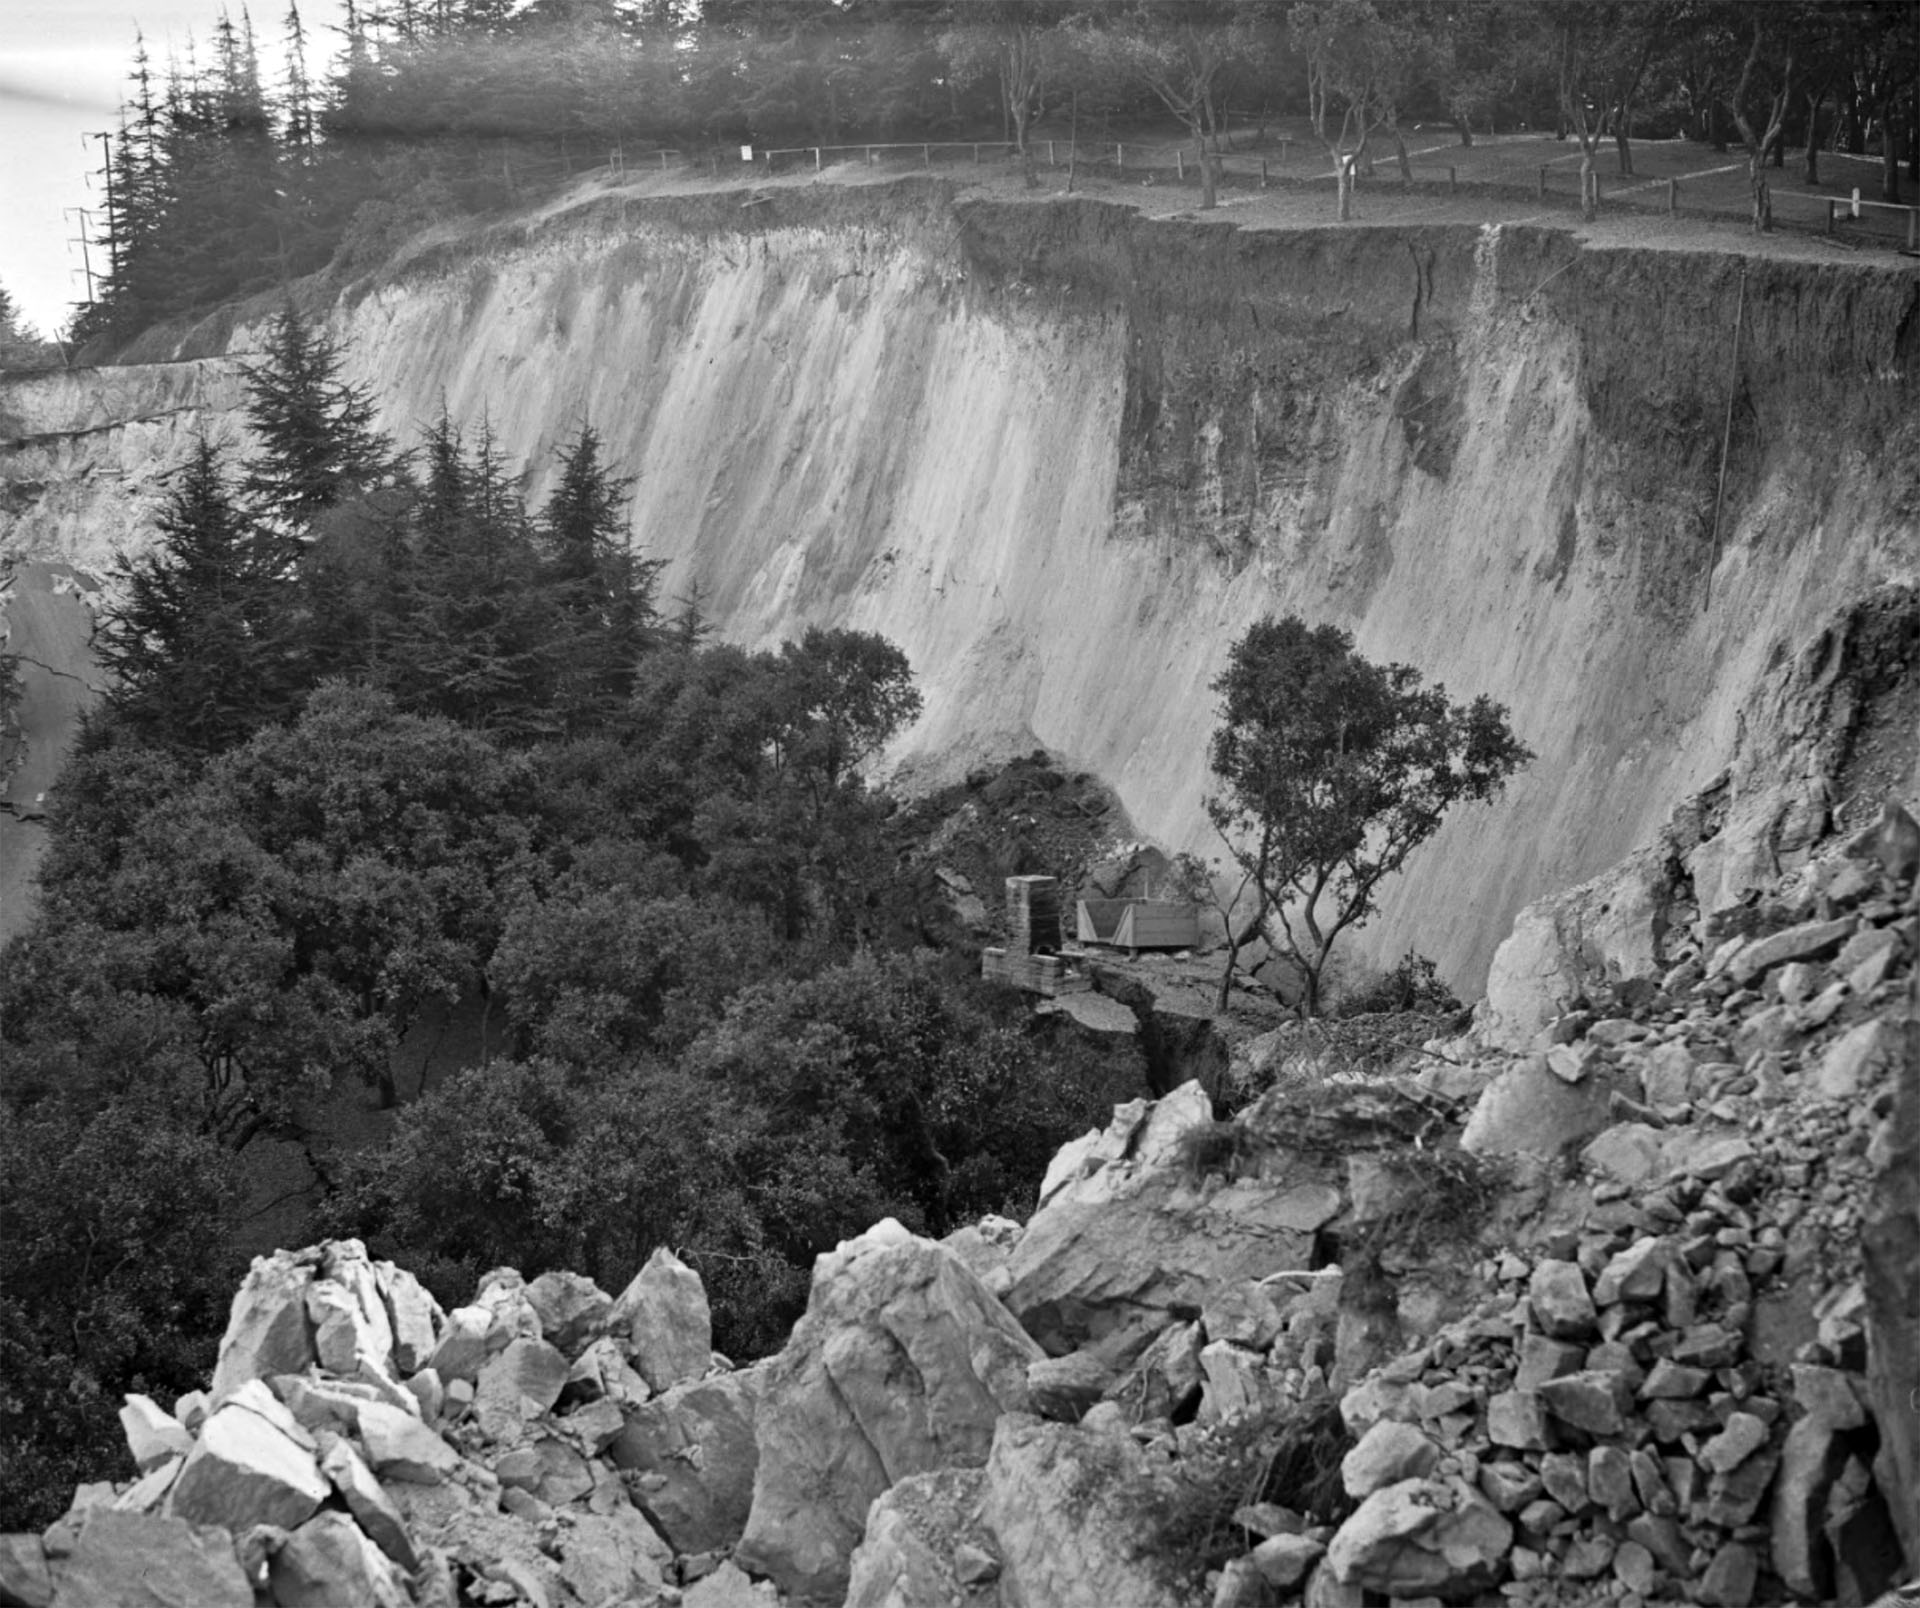 As the landslide crept toward the river, the forest atop the mass remained more or less intact. Courtesy of the Los Angeles Times Photographic Archive, Department of Special Collections, Charles E. Young Research Library, UCLA.